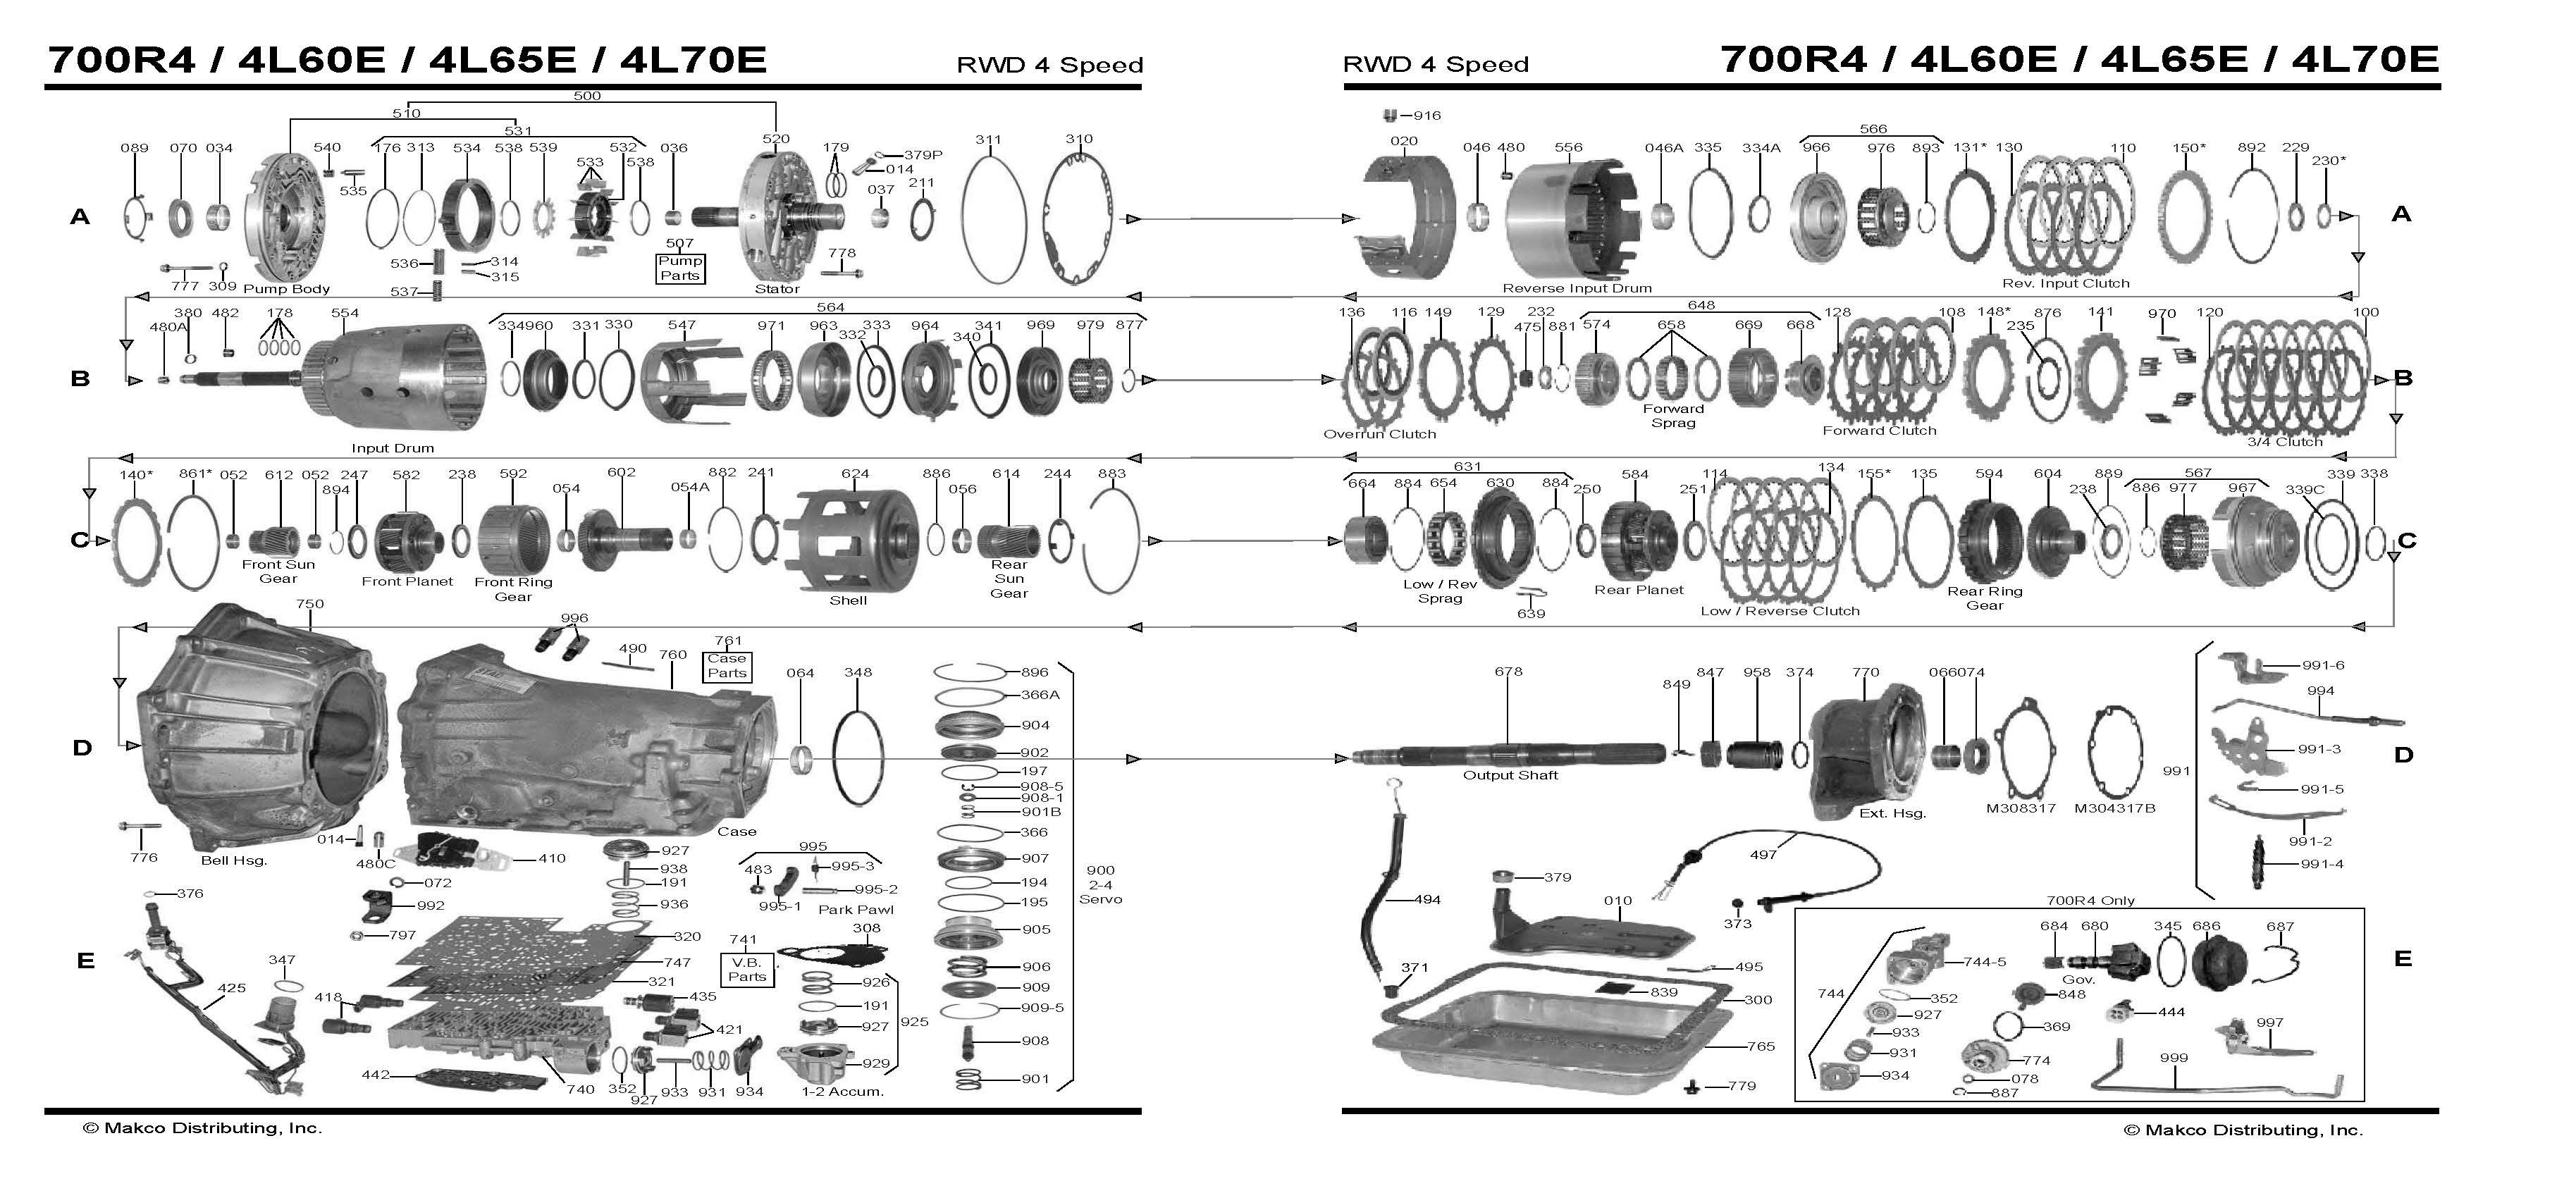 2007 Chevrolet Silverado Wiring Diagram | Wiring Diagram ...